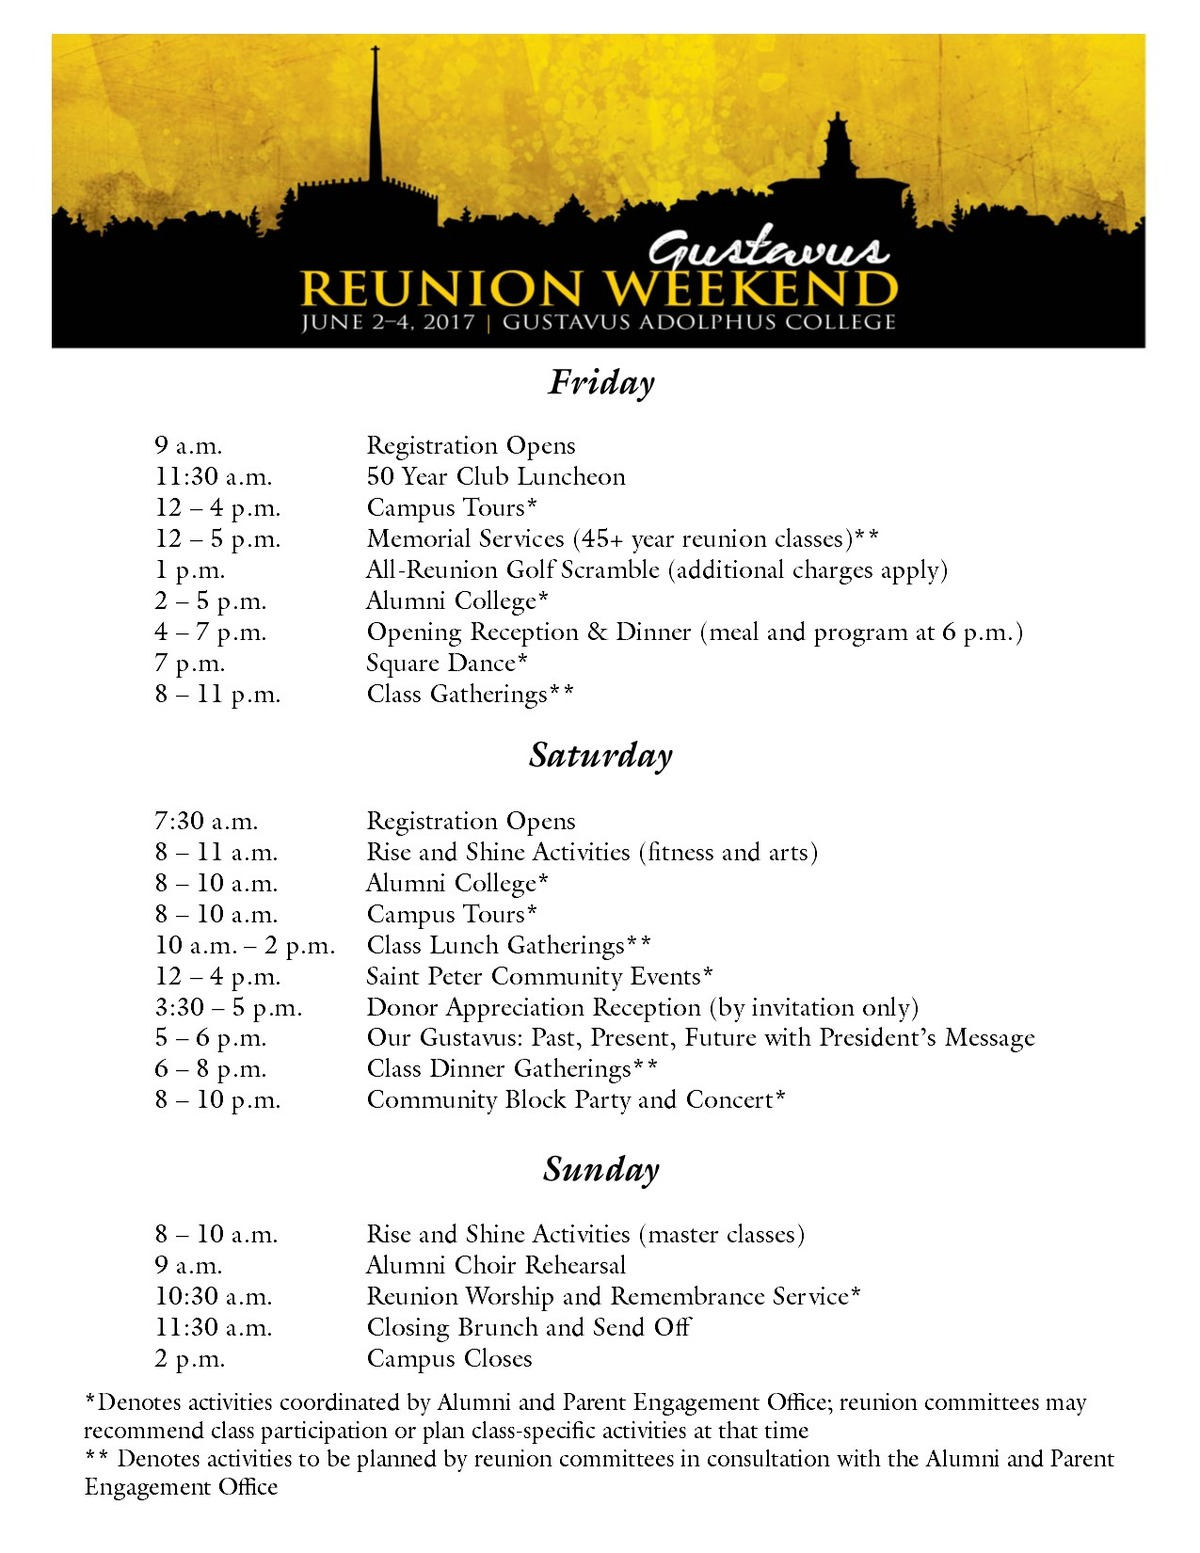 Reunion Weekend 2017 Schedule